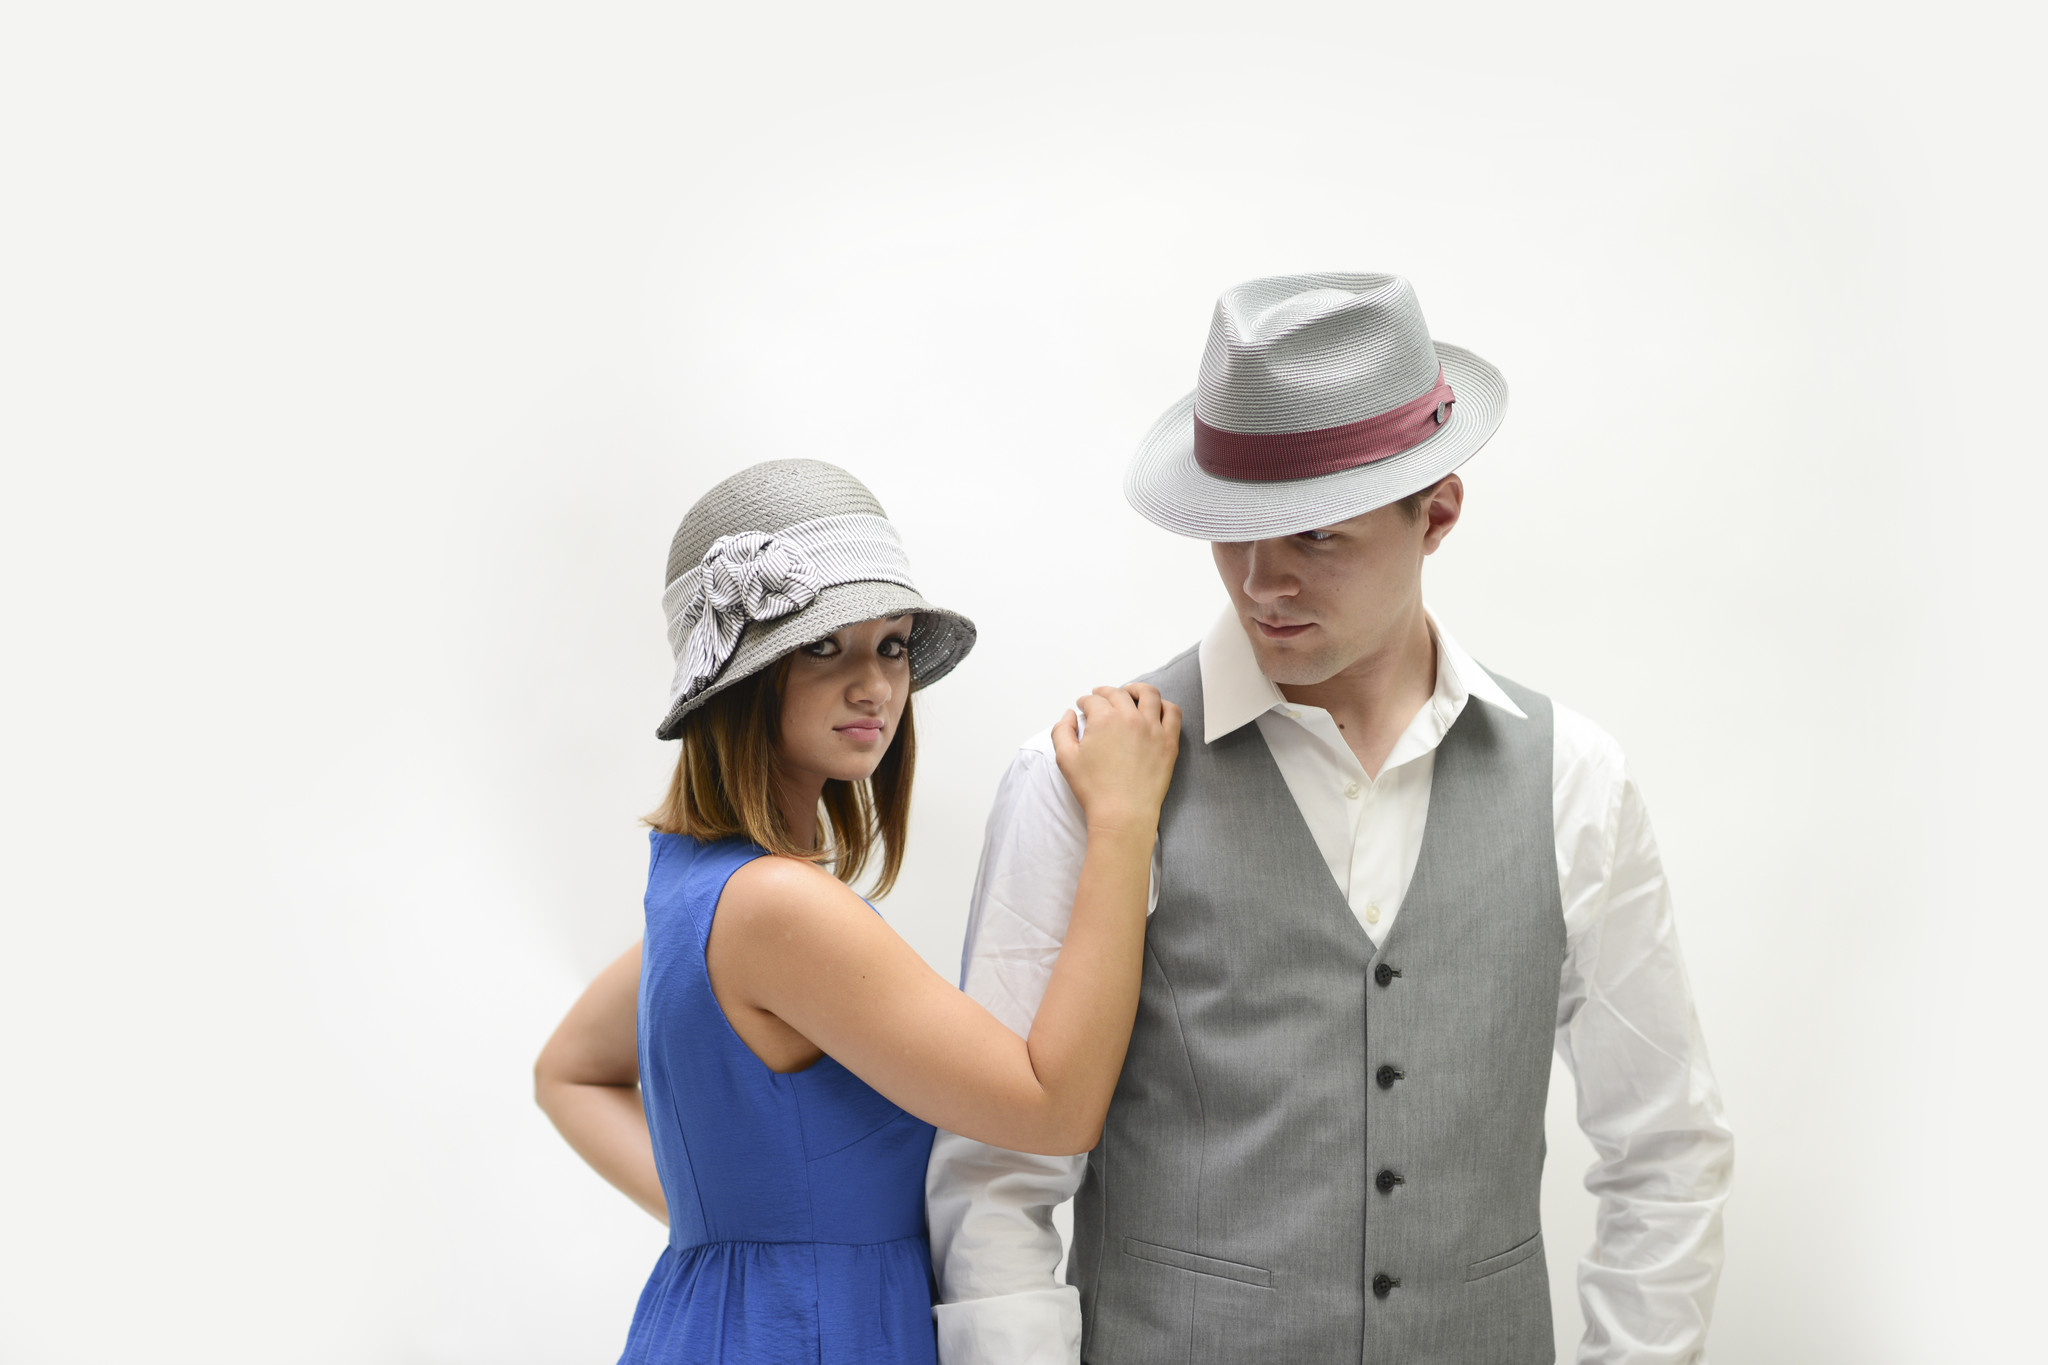 Headed To Annapolis Cup Croquet Match Or Preakness Hats In The